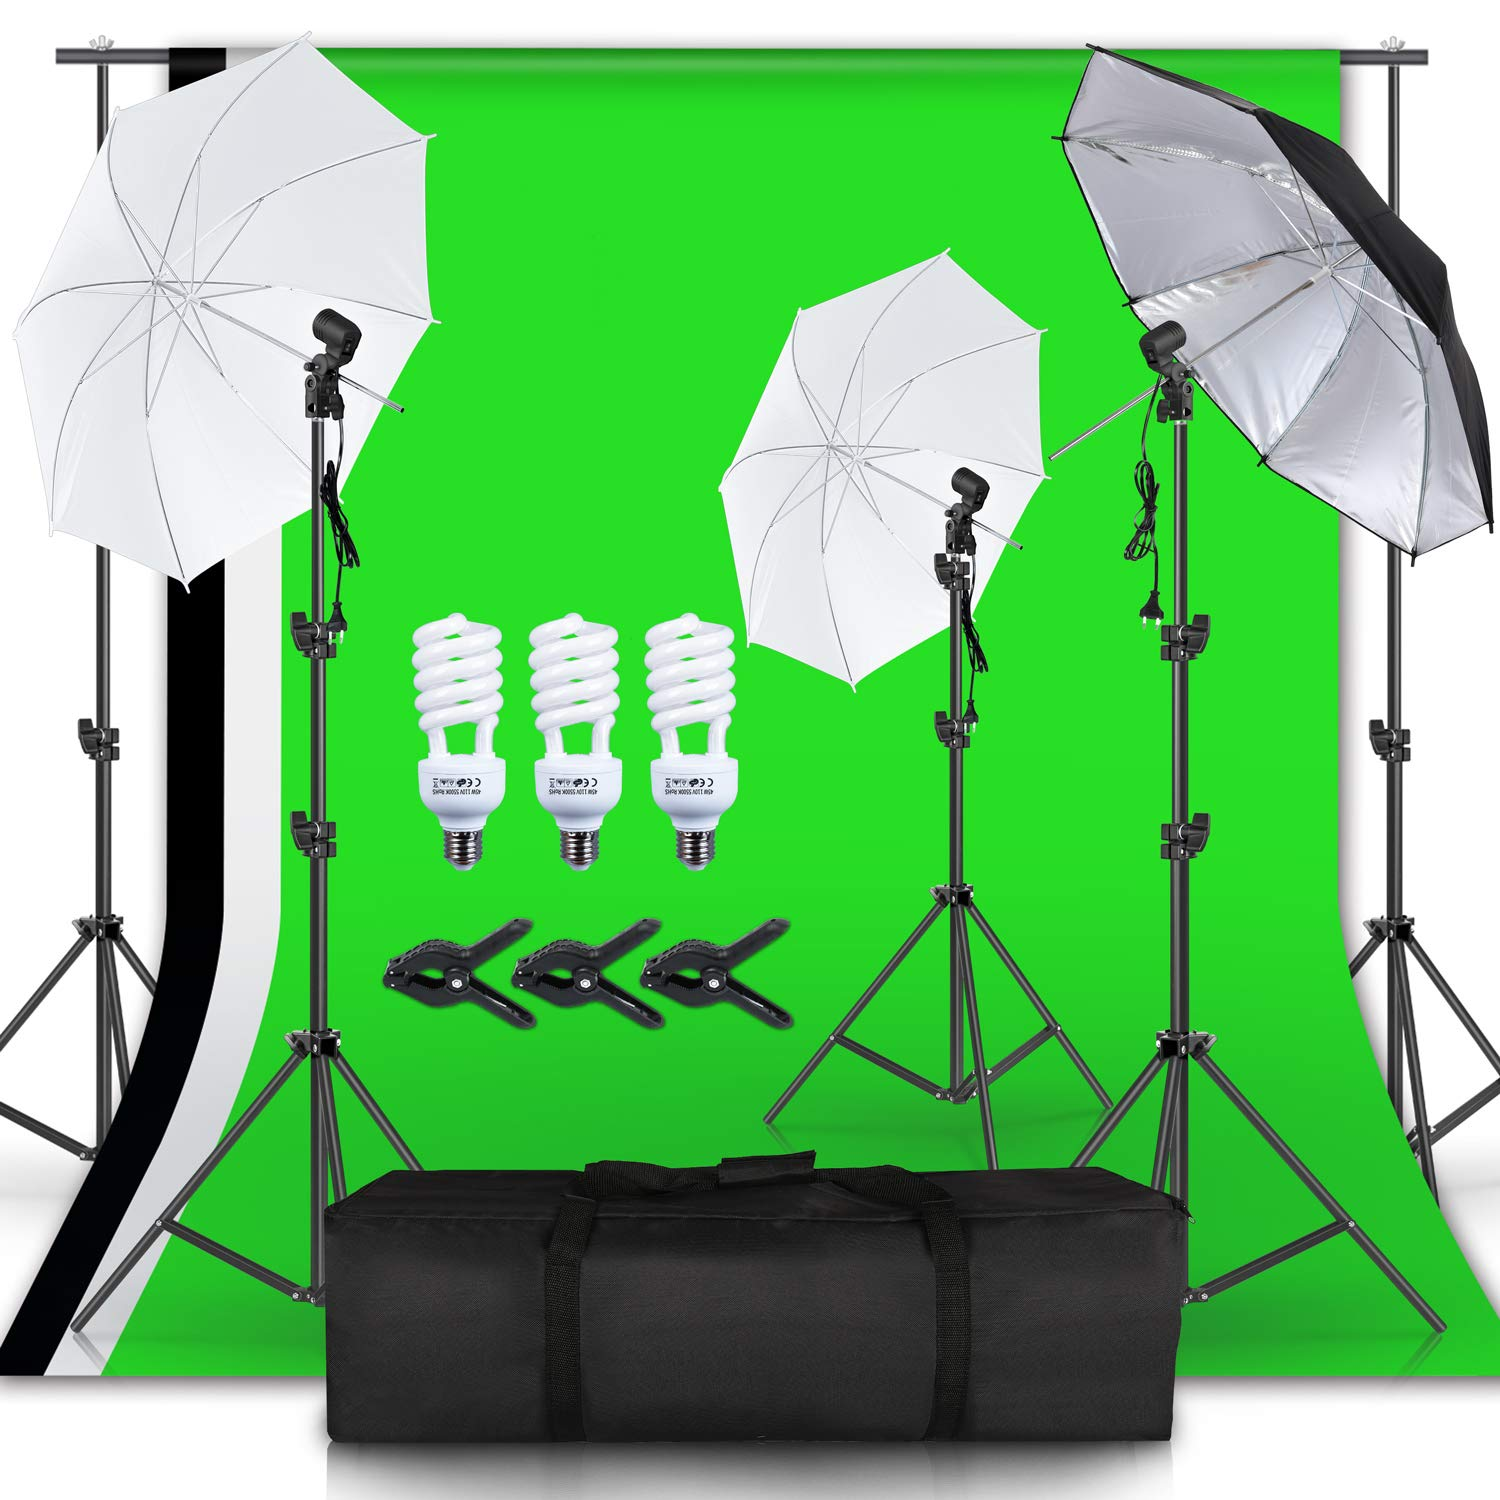 Photography Soft Light Umbrella Professional Photography Studio 5500K Daylight Continuous Lighting Photography Light Kit for Still Life Portrait Video Photography by YiXiang